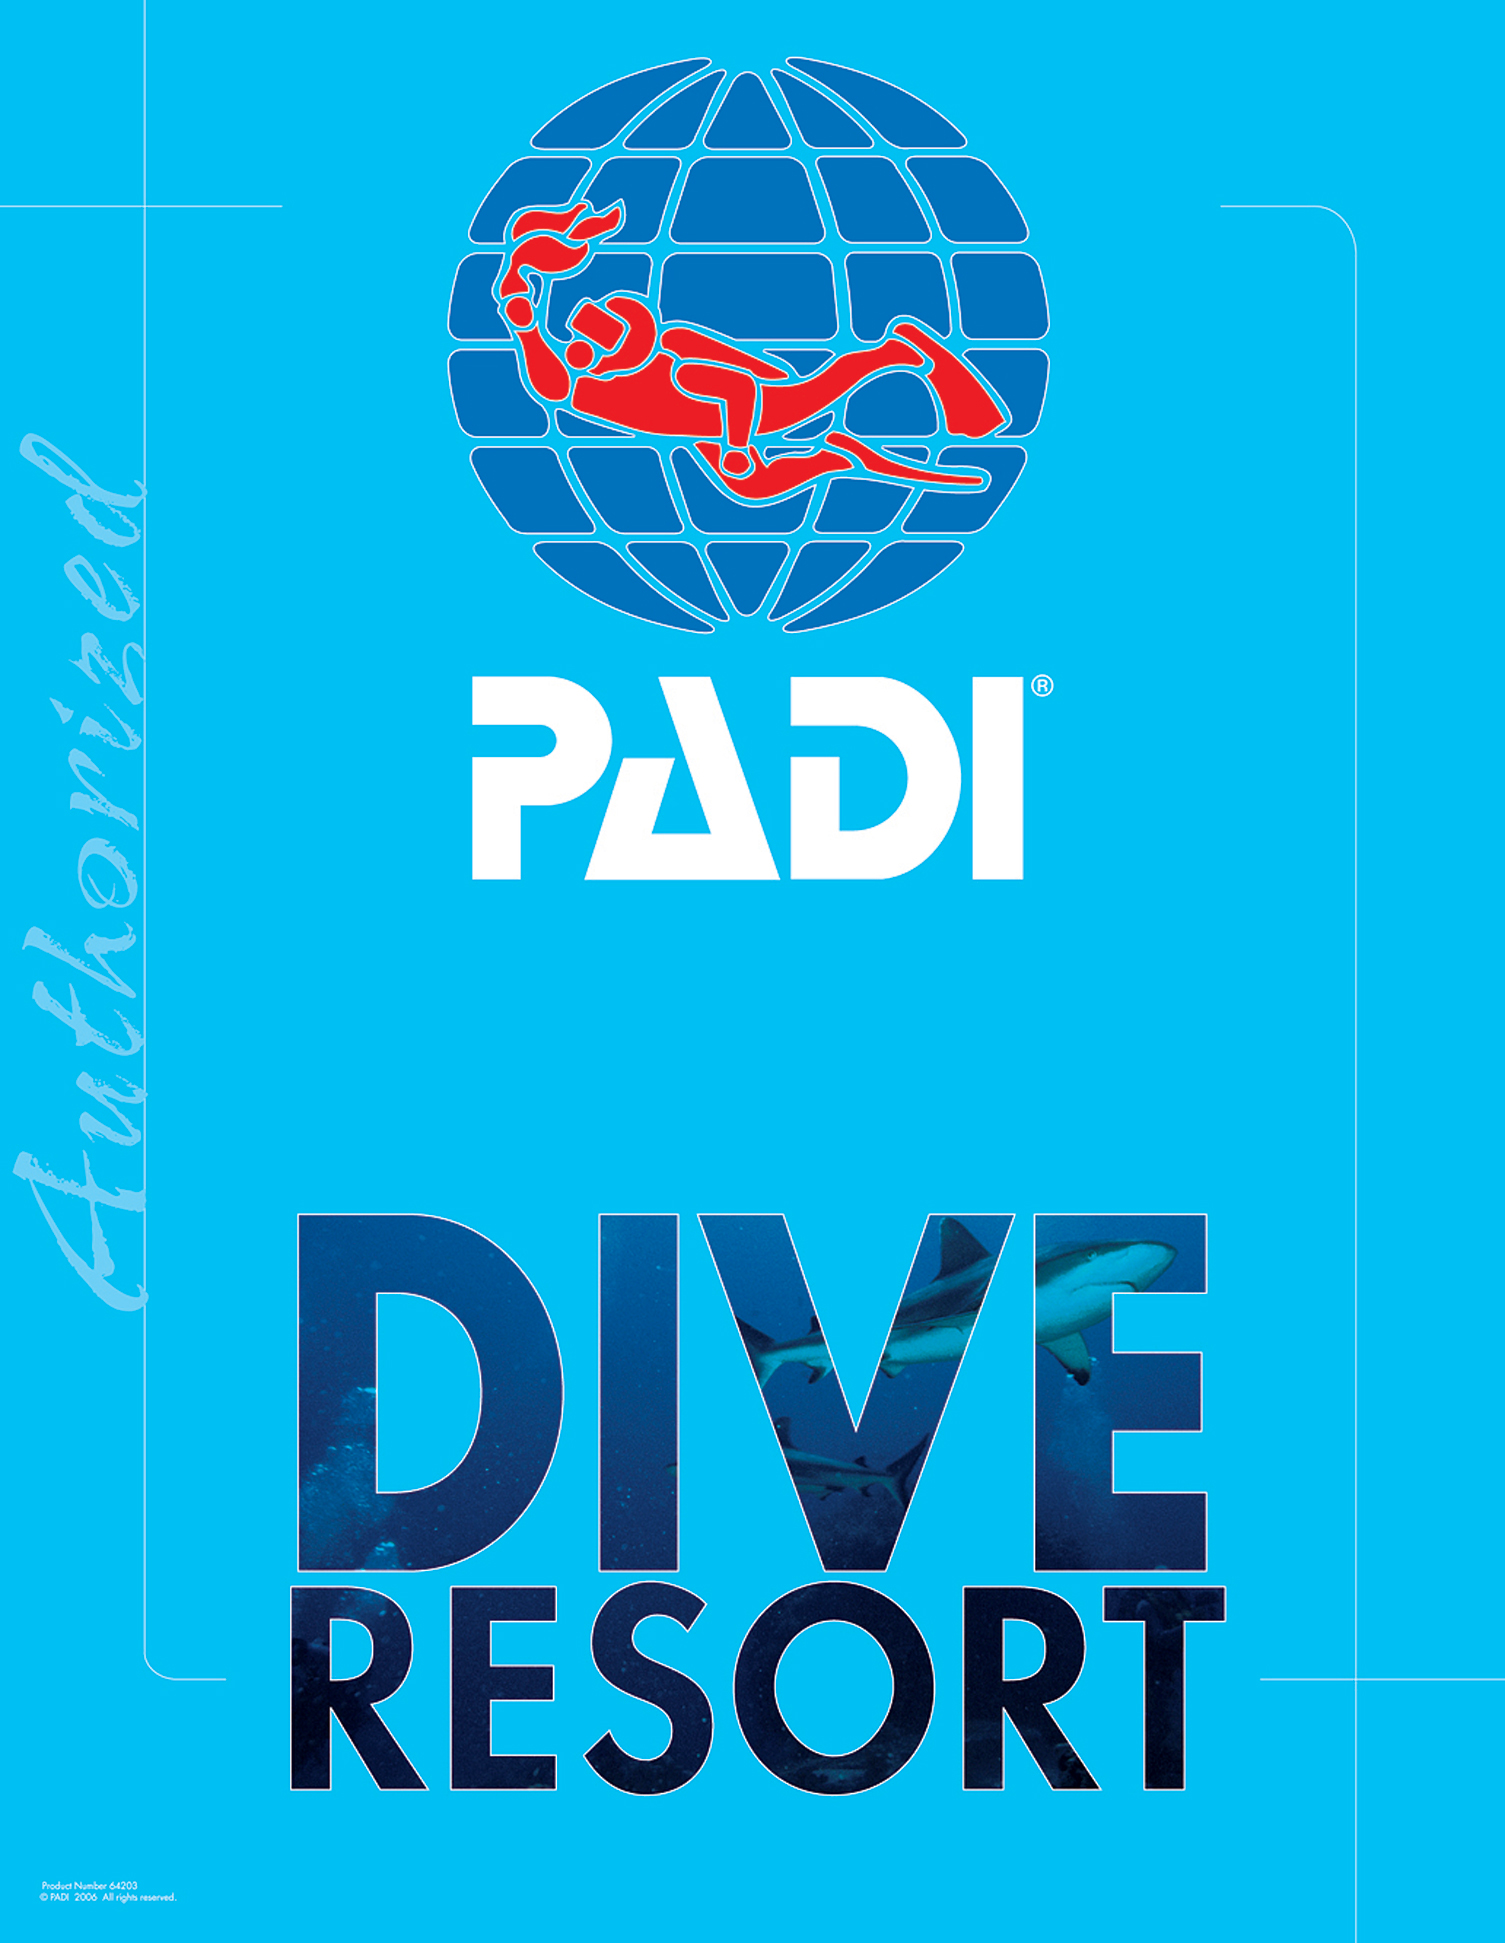 PADI Dive Resort